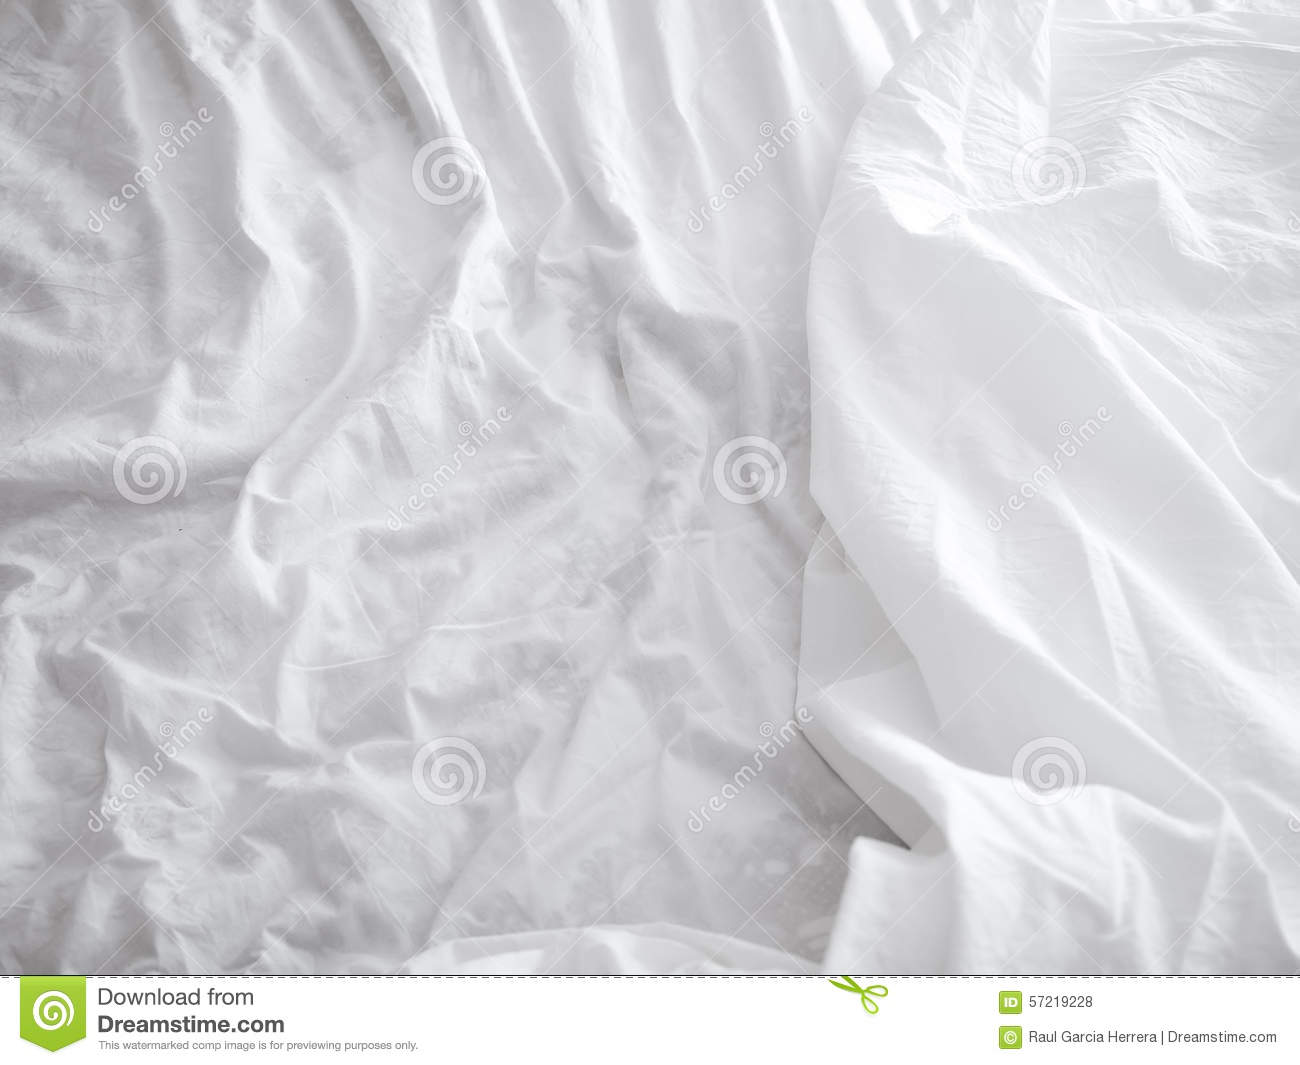 White bed sheets texture - White Bed Sheets Background And Texture